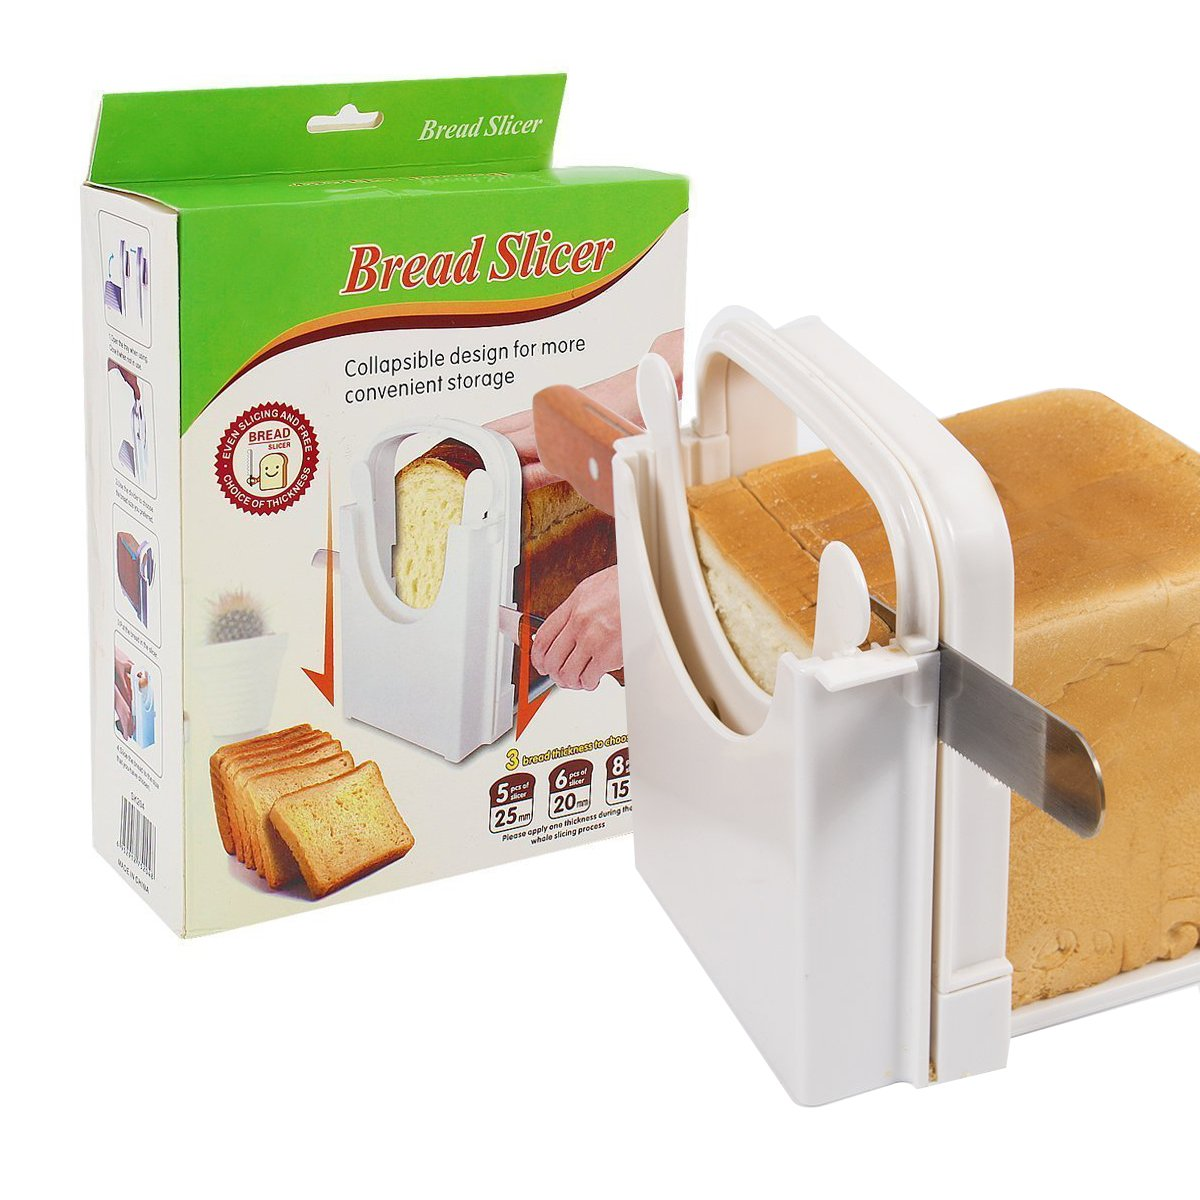 Bread Slicer Customization Toast Slicer Loaf Slicer Cutter for Homemade Bread ABS Environmentally Friendly Plastic Foldable, Bread Cutting Guide and Adjustable with 4 Slice Thicknesses,White